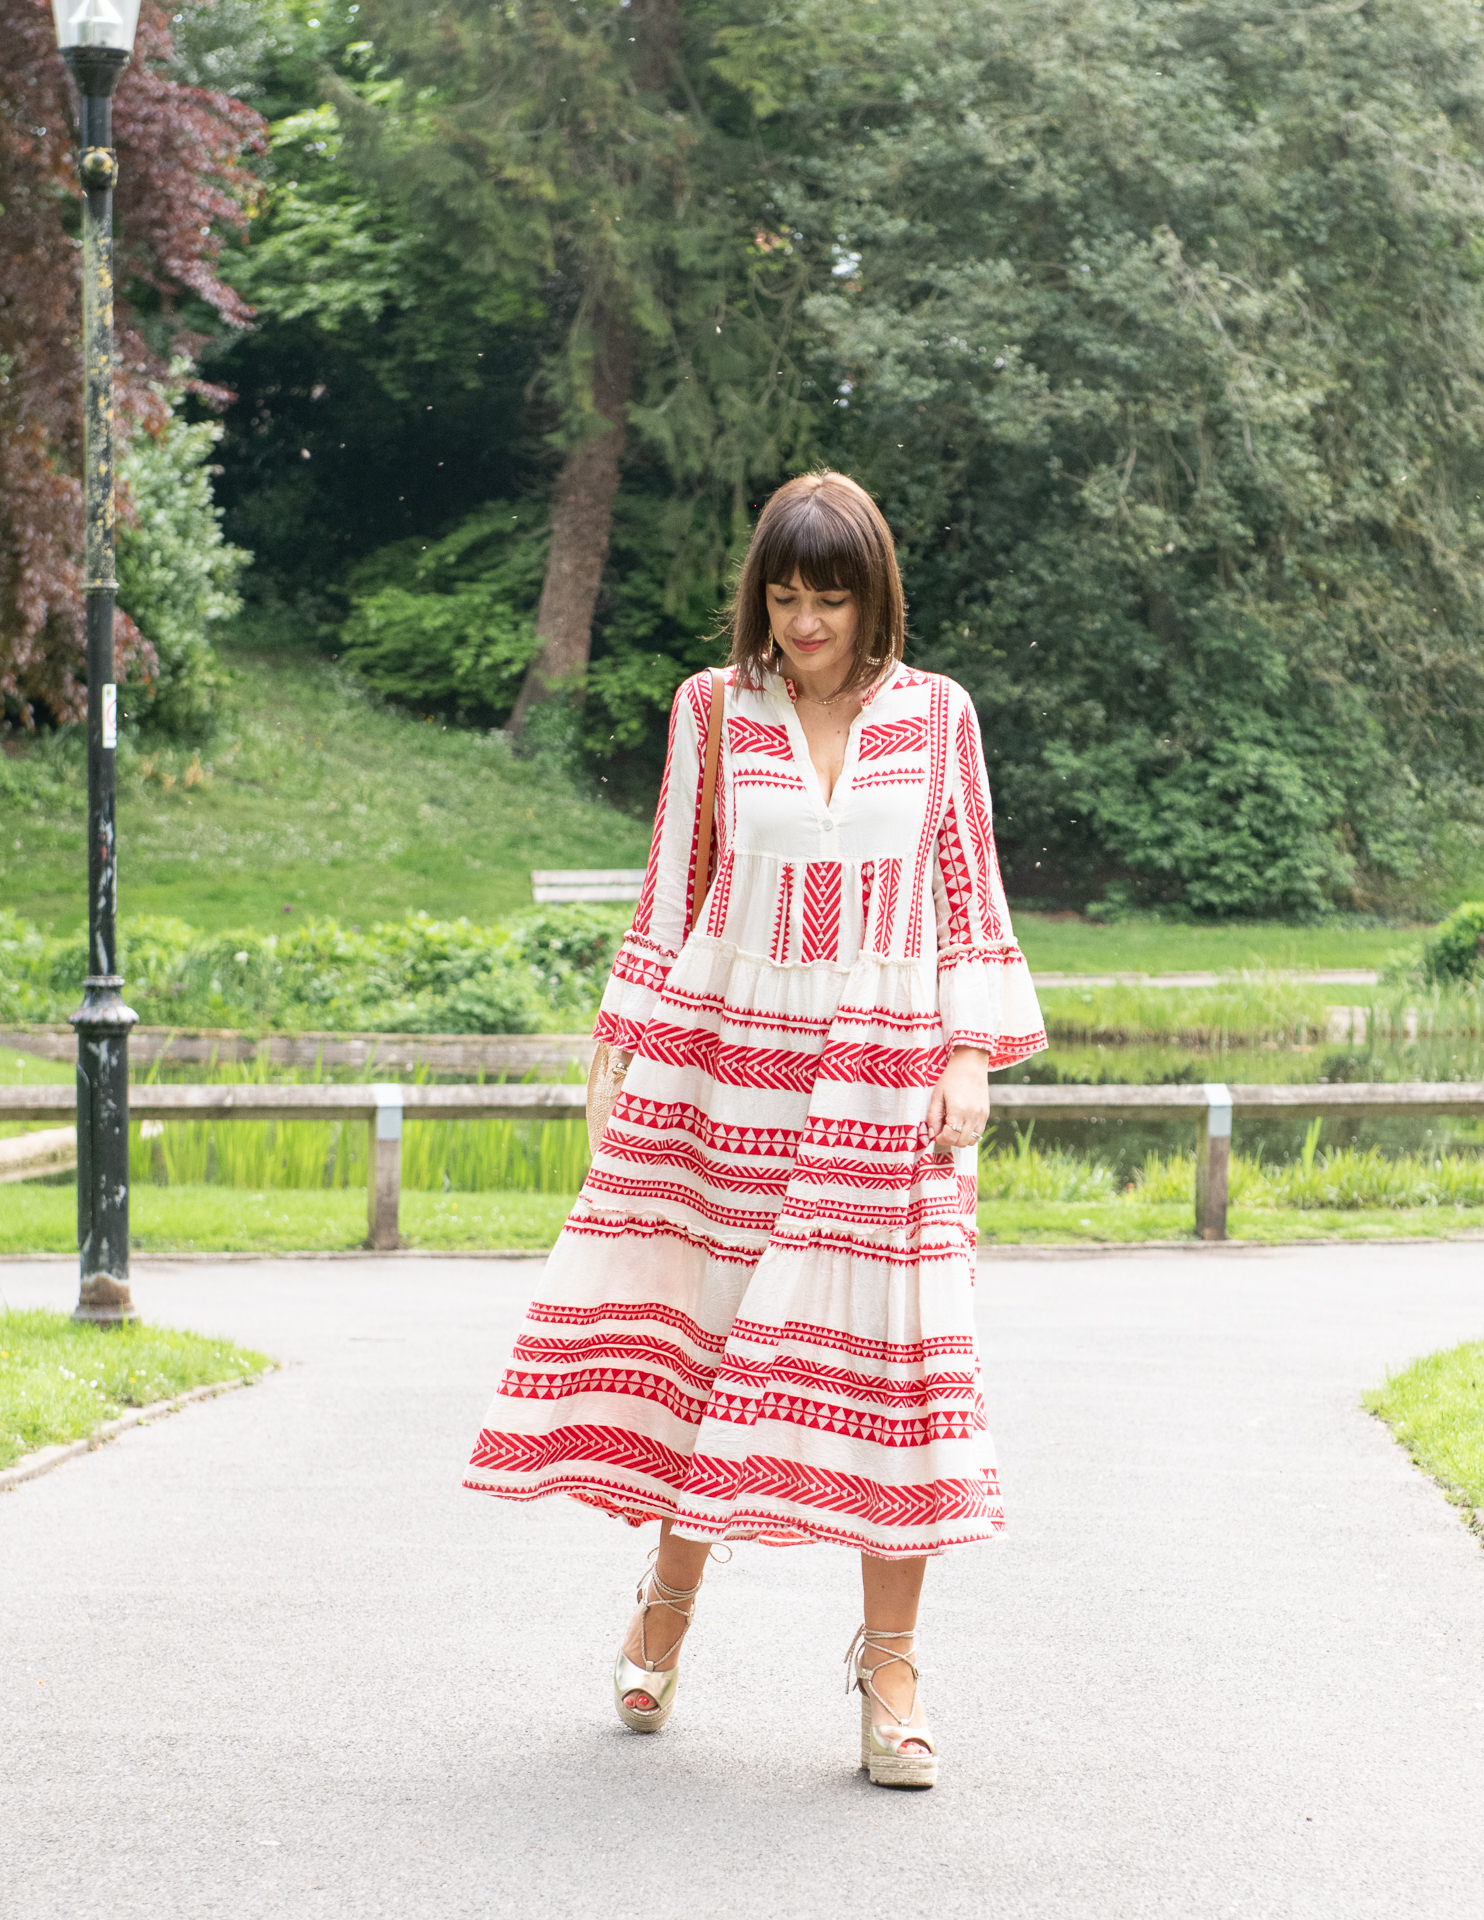 The Aztec dress in red and cream worn by Lizzi, style blogger to Loved by Lizzi - she is standing in a park wearing it with a straw bag and espadrilles